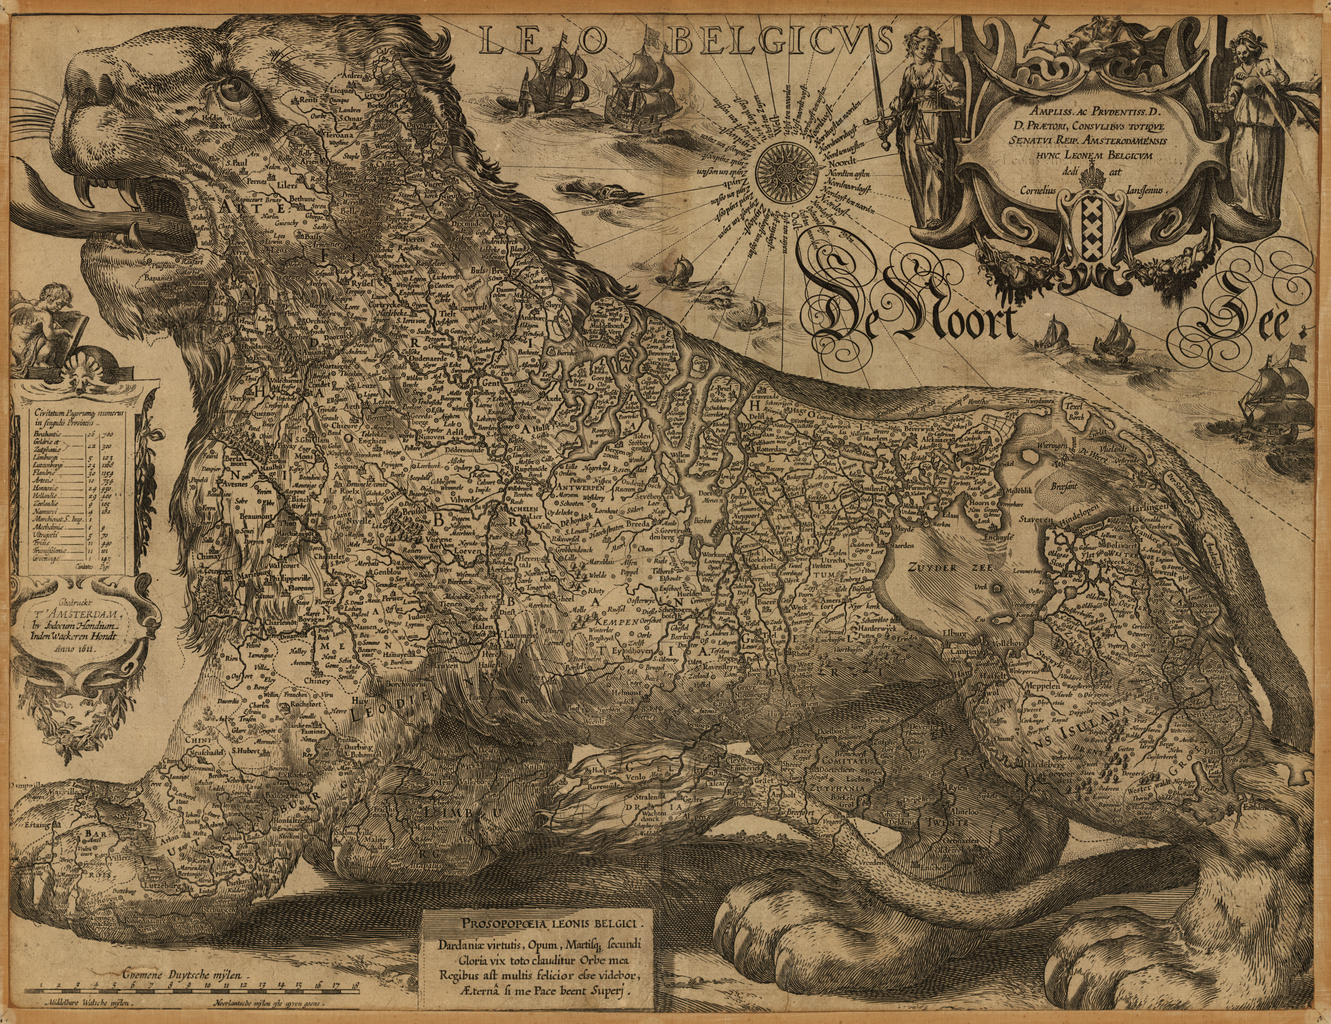 FileBelgium as a Lion WDL2685png  Wikimedia Commons